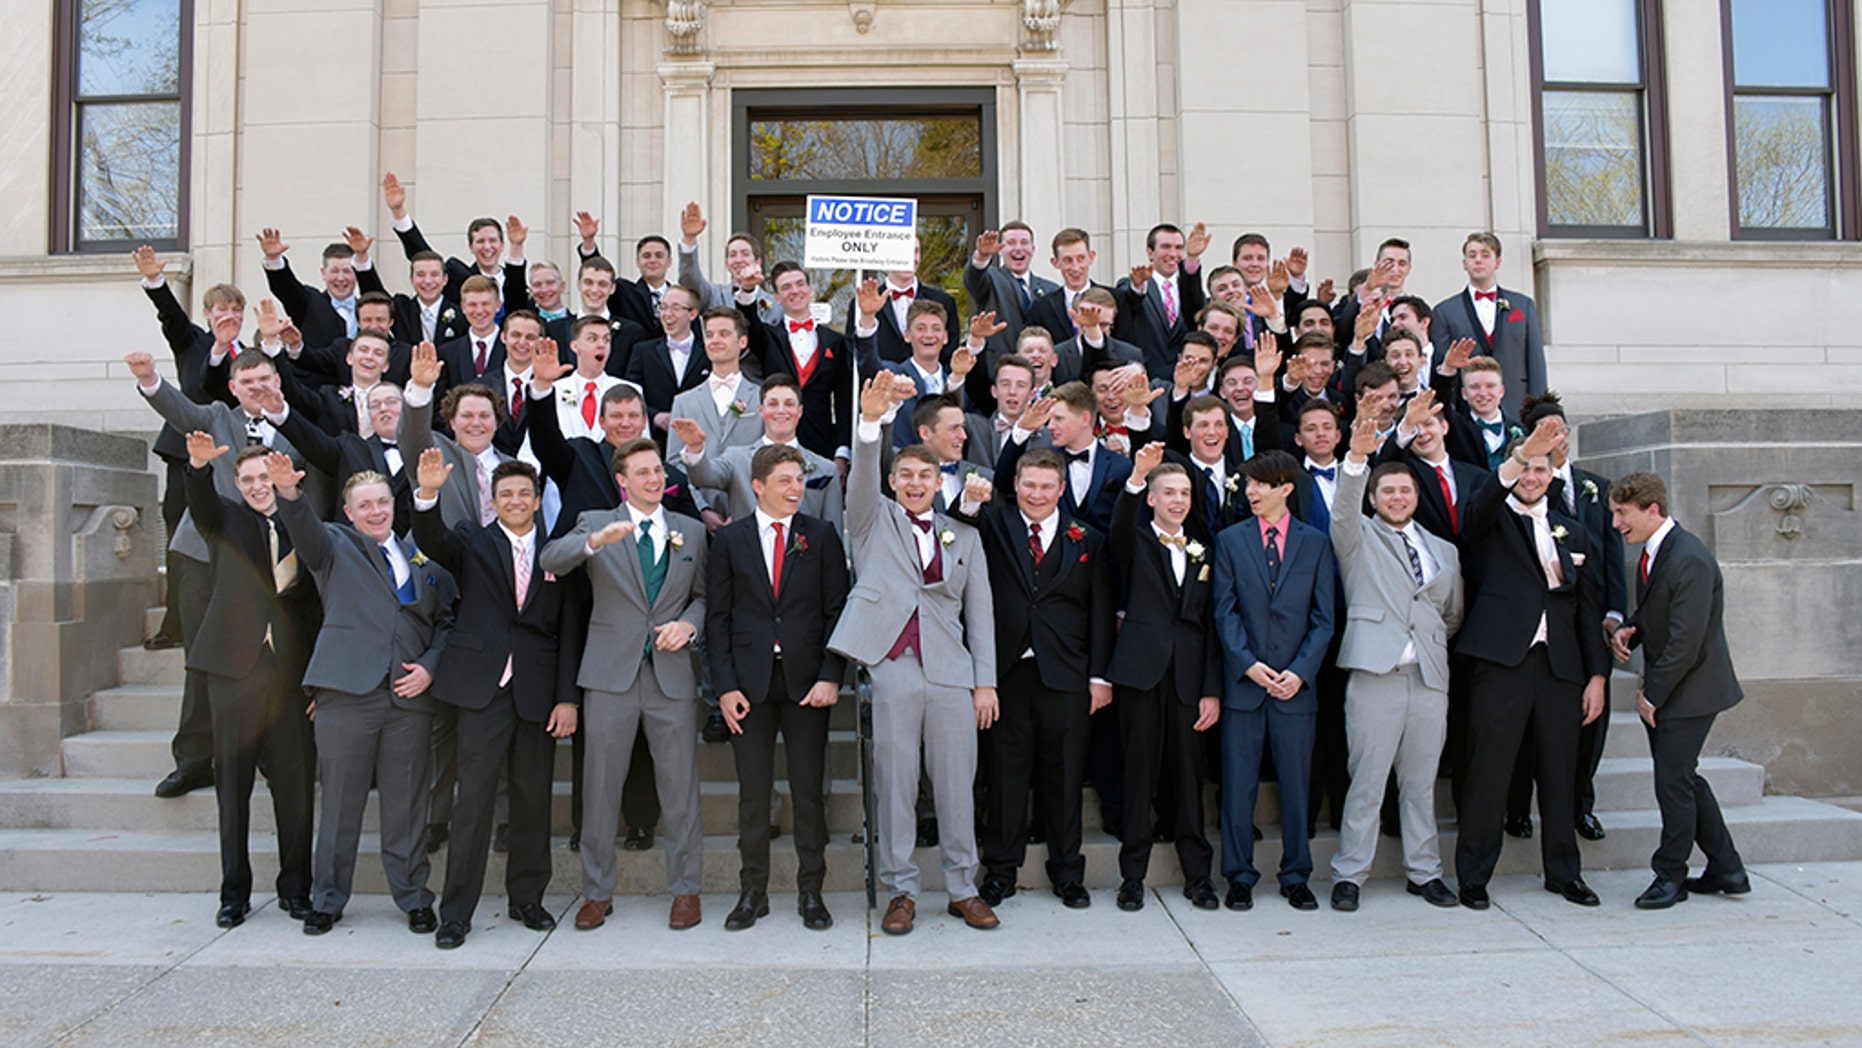 In this May 2018 photo provided by Peter Gust, a group of Wisconsin high school boys stand on the steps outside the Sauk County Courthouse in Baraboo, Wis. The image has drawn widespread condemnation because of the appearance that some of the students are giving a Nazi salute. Gust, who has a son in the photo, denies there was an intent to offend anyone and says they are waving goodbye to their parents before they head to prom. (Peter Gust via AP)